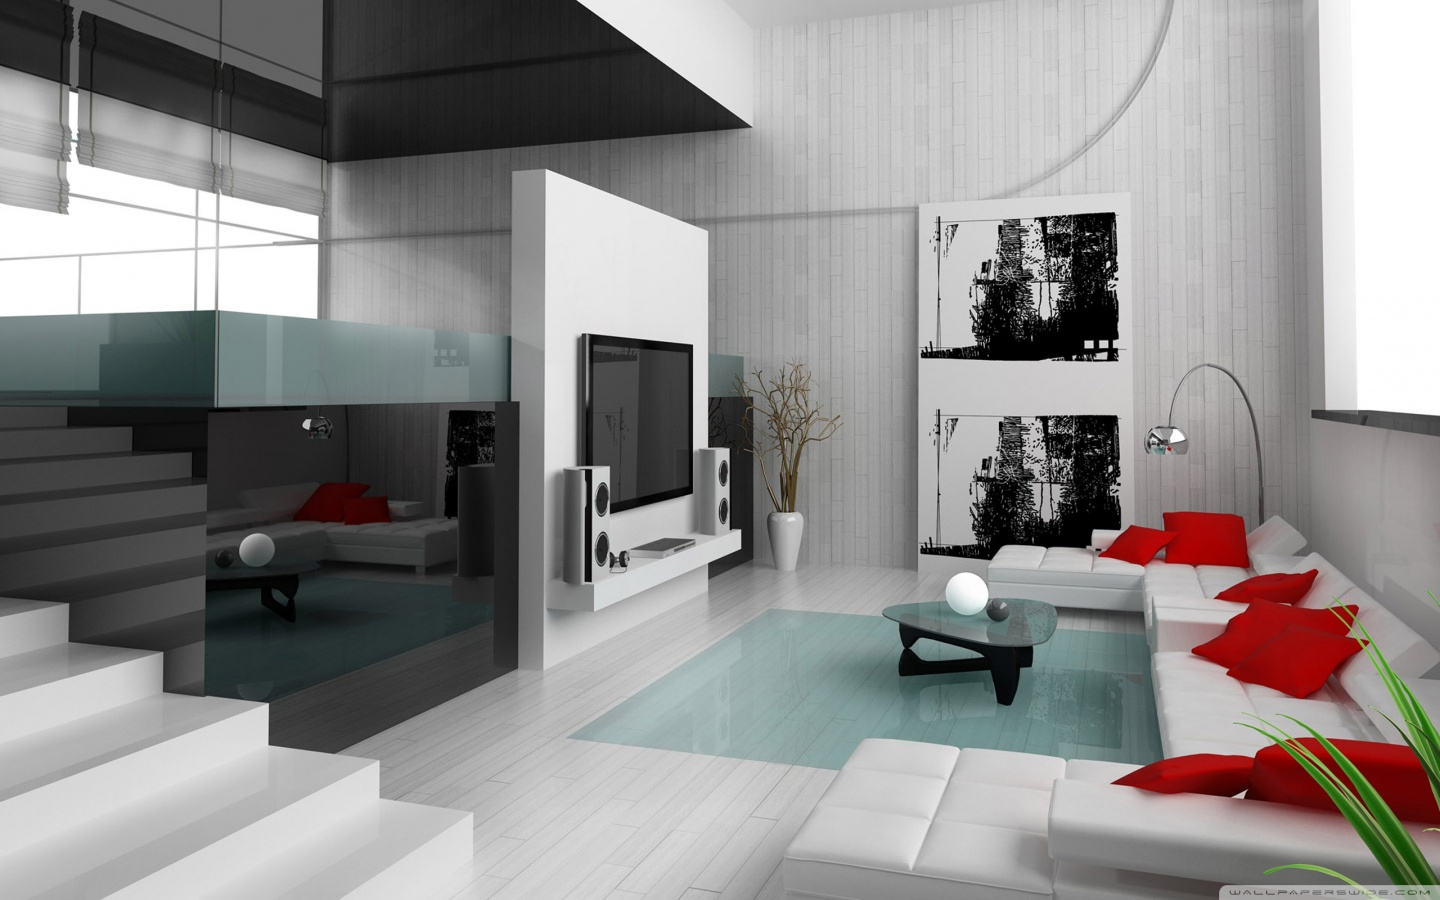 Minimalist interior design imagination art architecture for Minimalist home interior